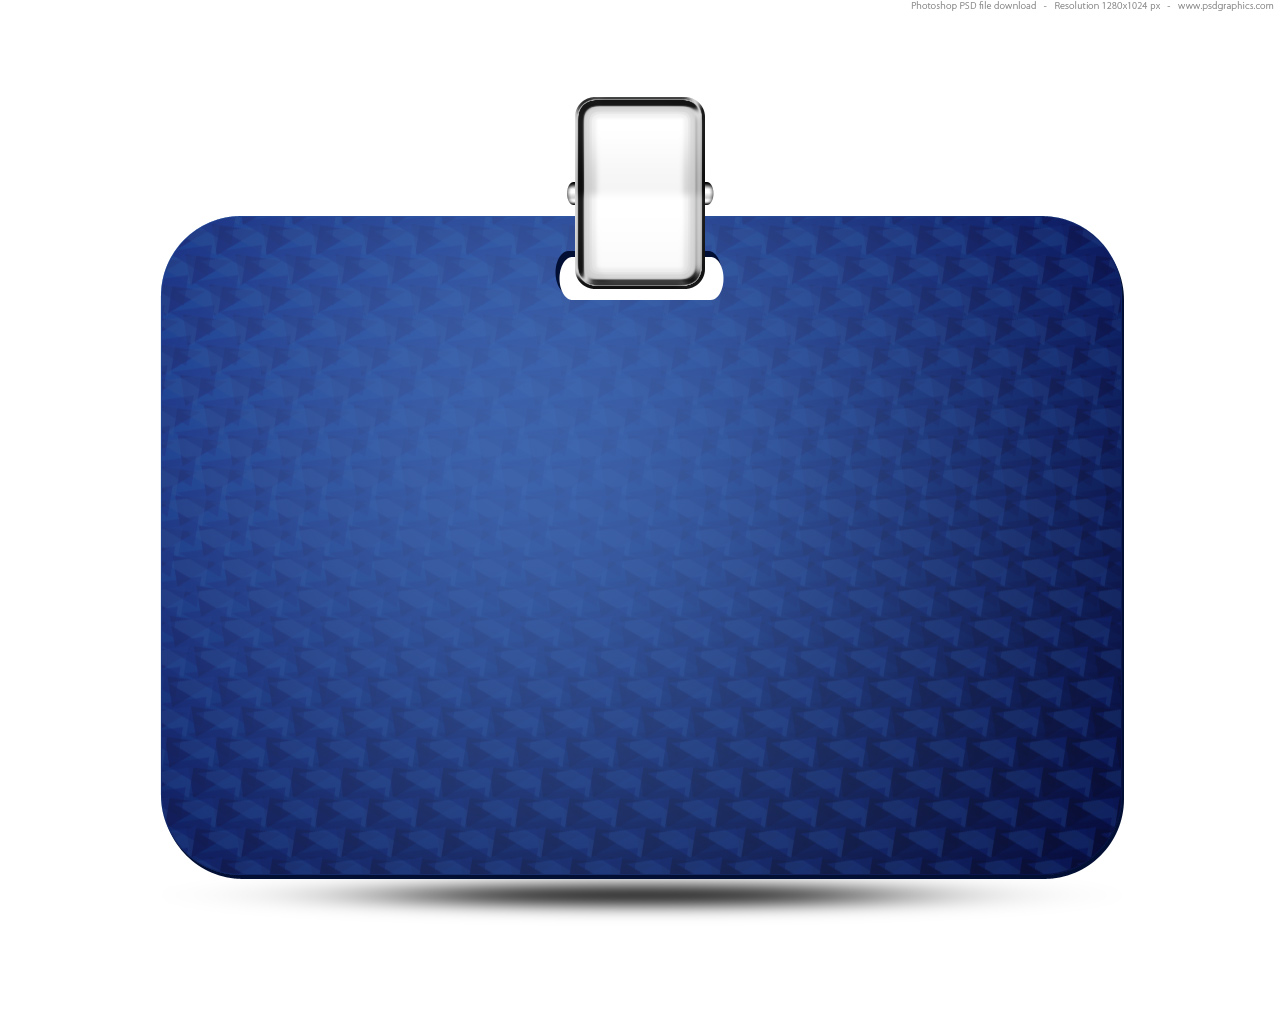 Name tag icon, blue identification card (PSD) | PSDGraphics